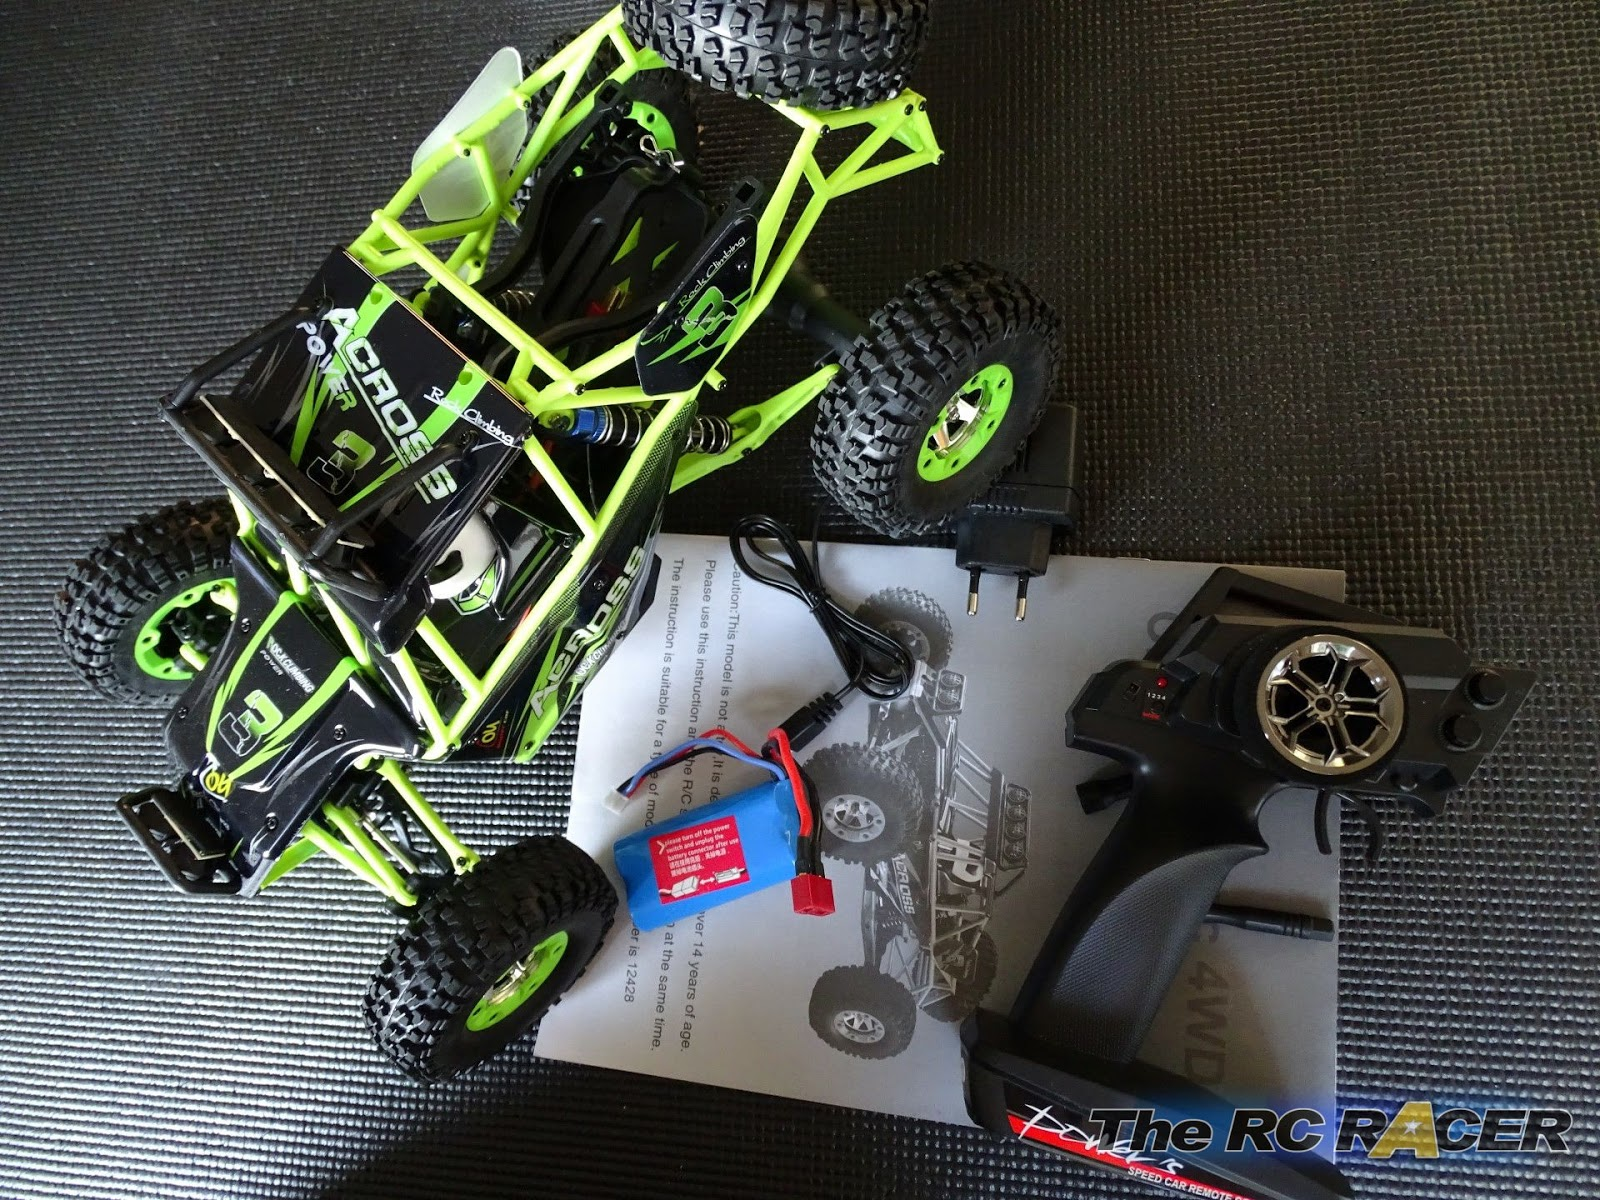 Wltoys 12428 Across 24ghz 4wd Off Road Vehicle Review The Rc Racer Tips On Powering Servos Receivers Radios And Vehicles With Lipos Whats In Box